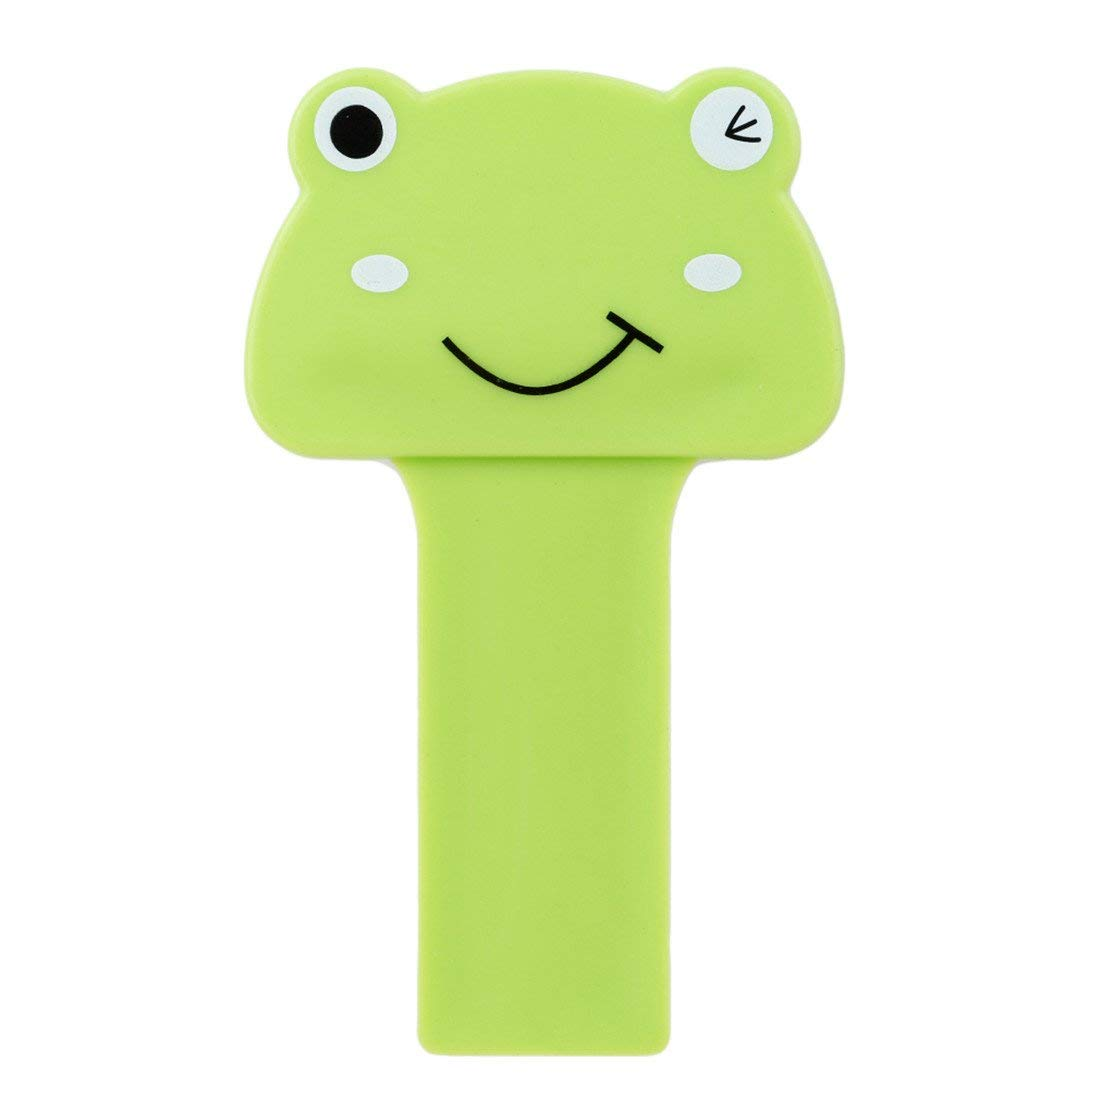 VWH Cute Cartoon Toilet Lifting Device Bathroom Toilet Lid Portable Handle Bathroom Toilet Seat Accessories (green)